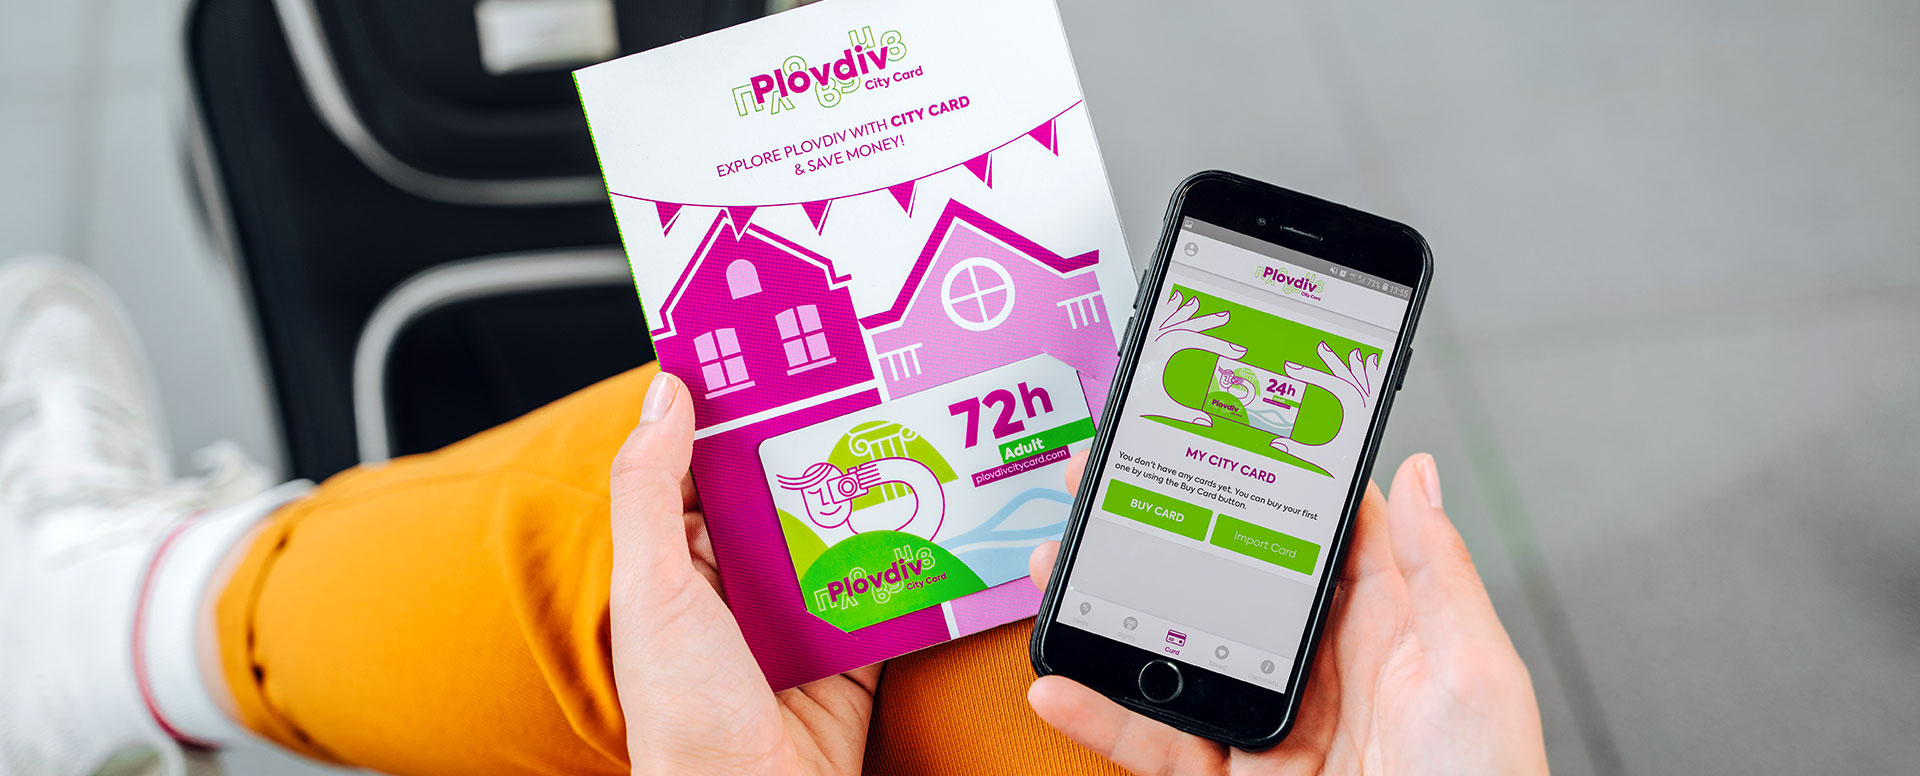 plovdiv-city-card-summer-homepage-banner